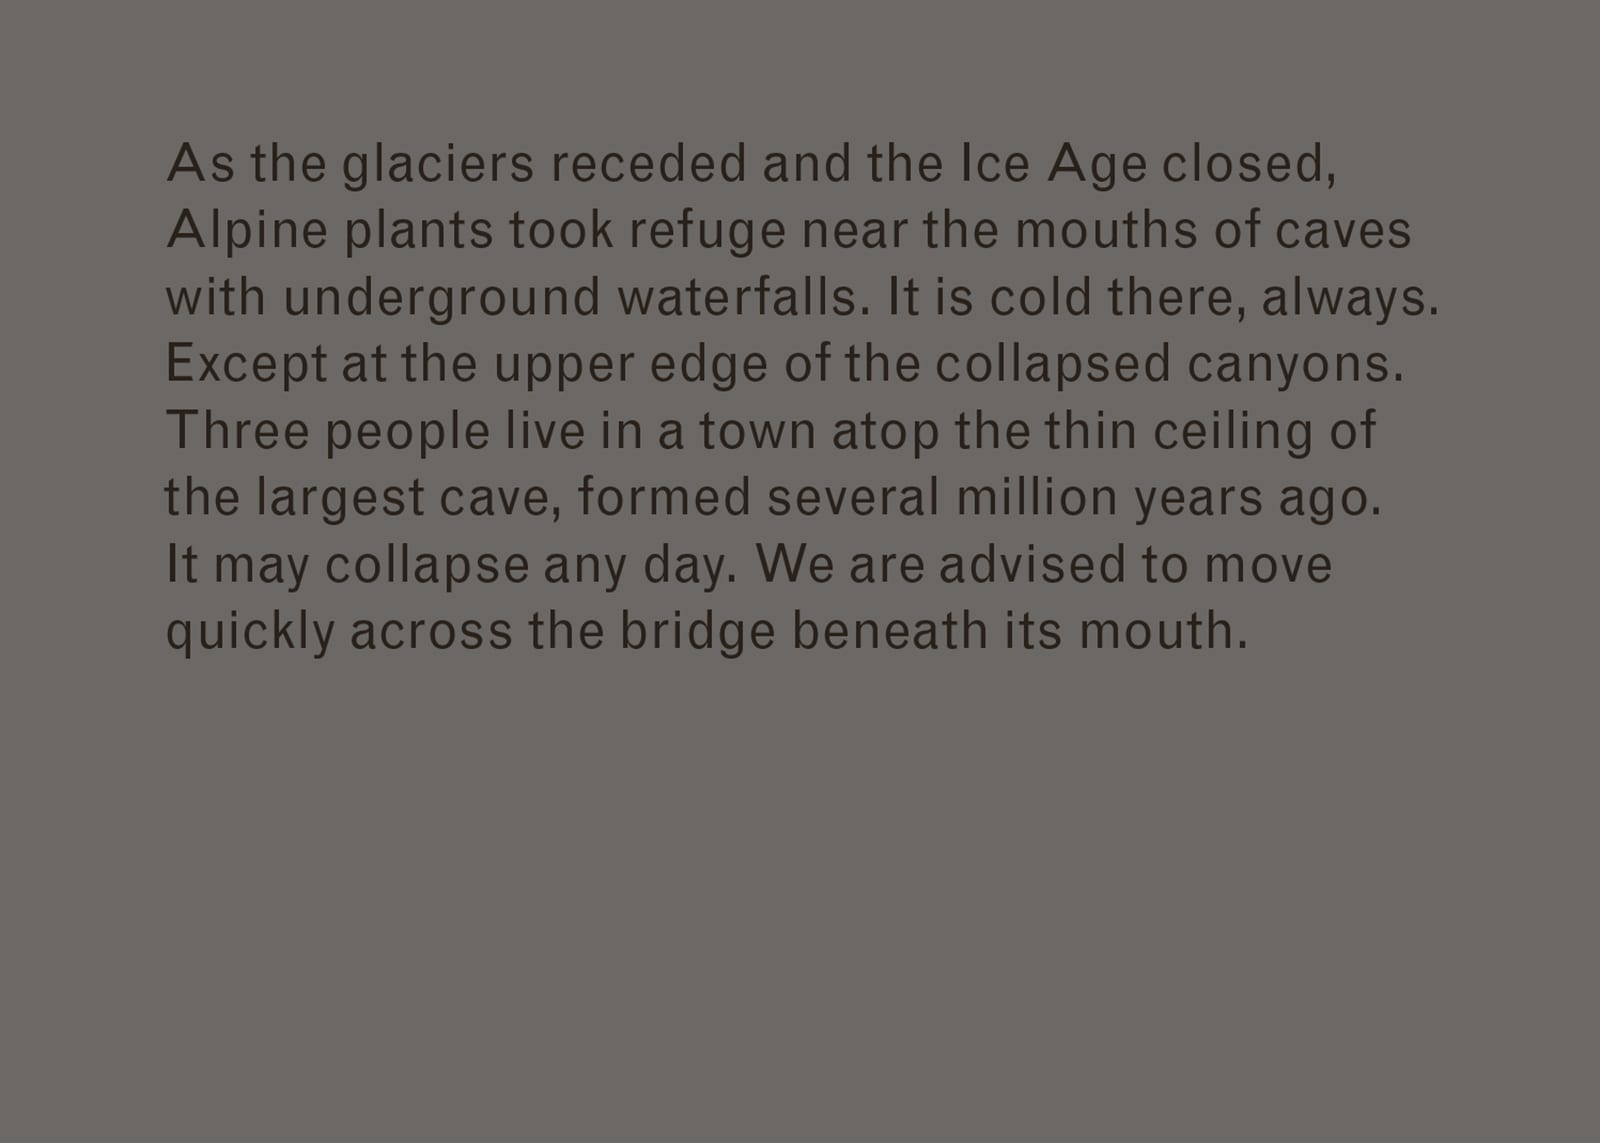 Excerpt of text from Imaginary Explosions. Text reads: As the glaciers receded and the Ice Age closed, Alpine plants took refuge near the mouths of caves with underground waterfalls. It is cold there, always. Except at the upper edge of the collapsed canyons. Three people live in a town atop the thin ceiling of the largest cave, formed several million years ago. It may collapse any day. We are advised to move quickly across the bridge beneath its mouth.